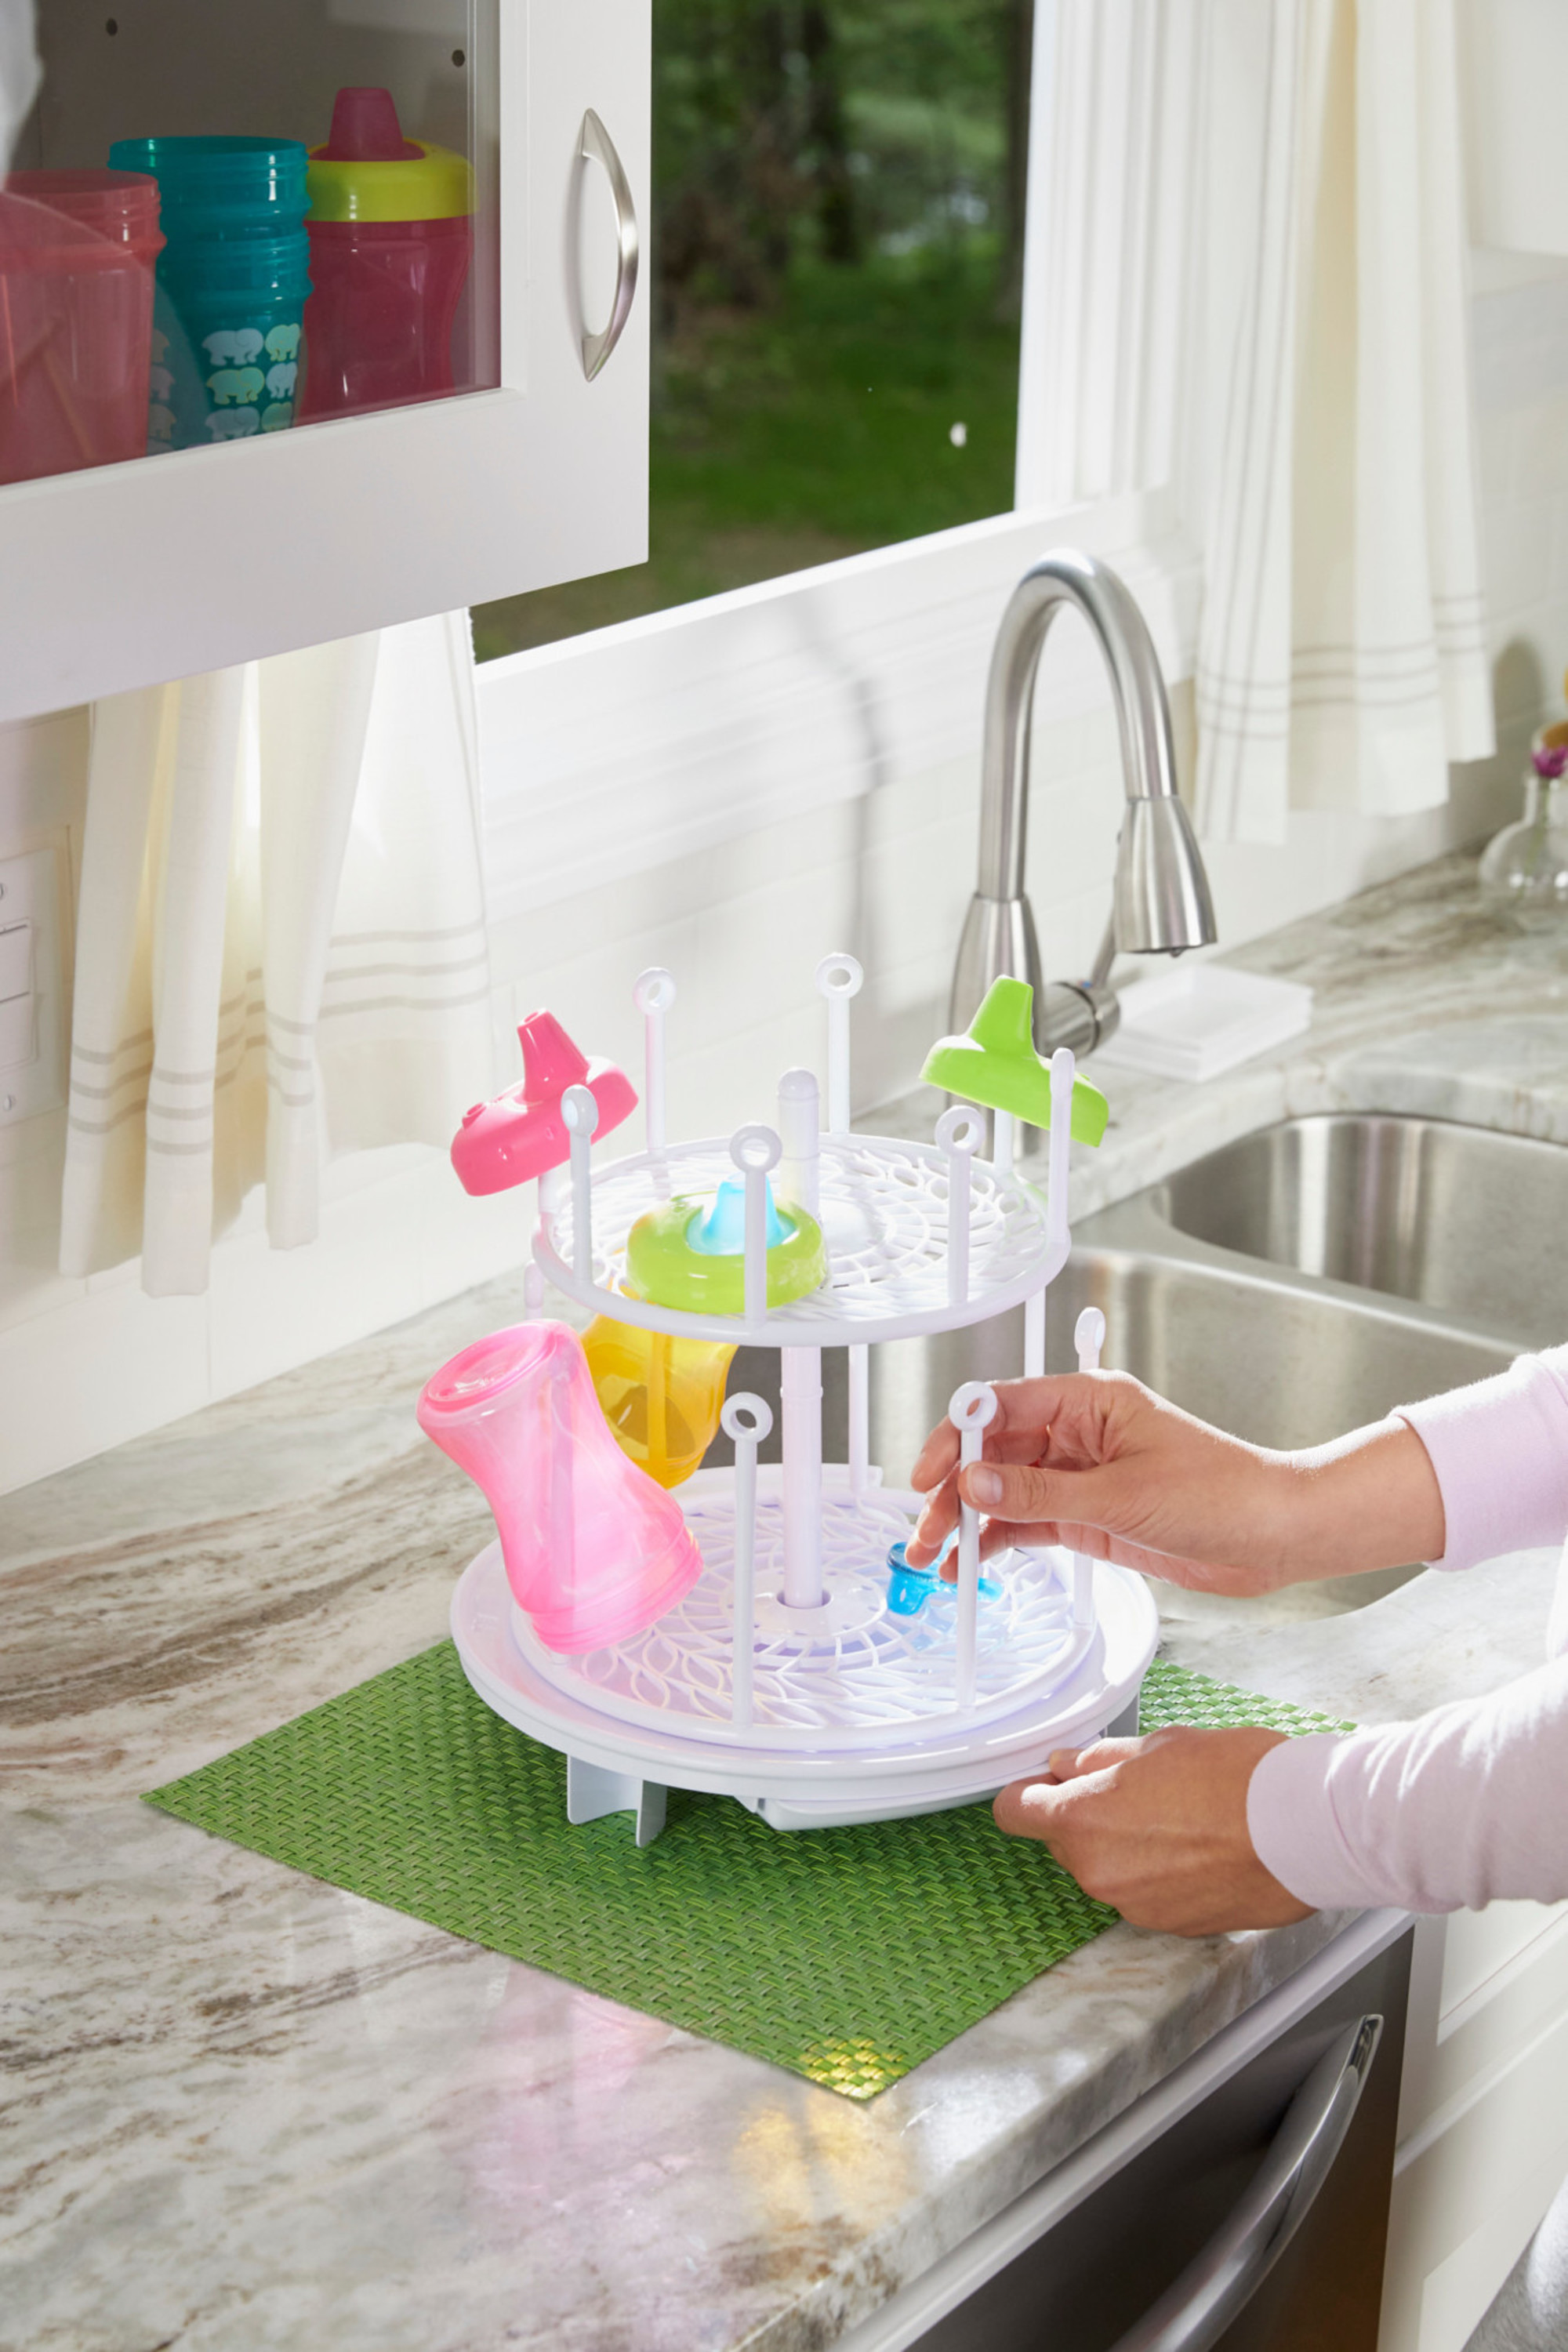 Baby Bottle Dryer Rack ,Countertop Drying Rack for Bottles Cups Pump Parts and Accessories ,Stylish Nursery Accessories Perfect for Baby Shower Gift Teats Baby Essentials for New Parents